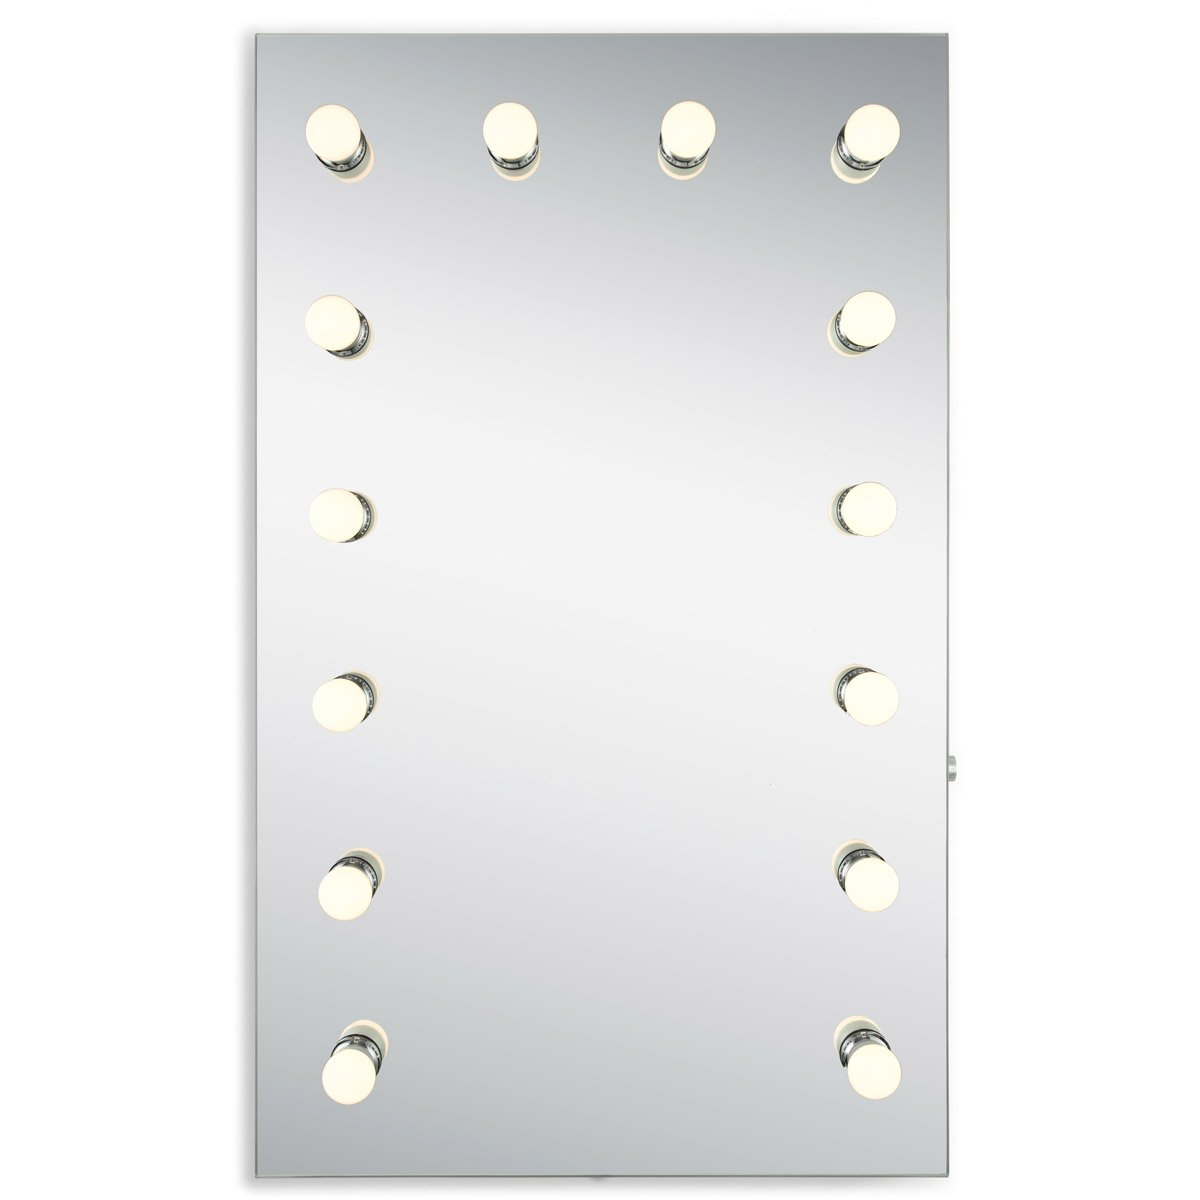 Hollywood 39.5 X 24 Led Mirror - Silver Anodized Finish (Mre8533K) Led Mirror